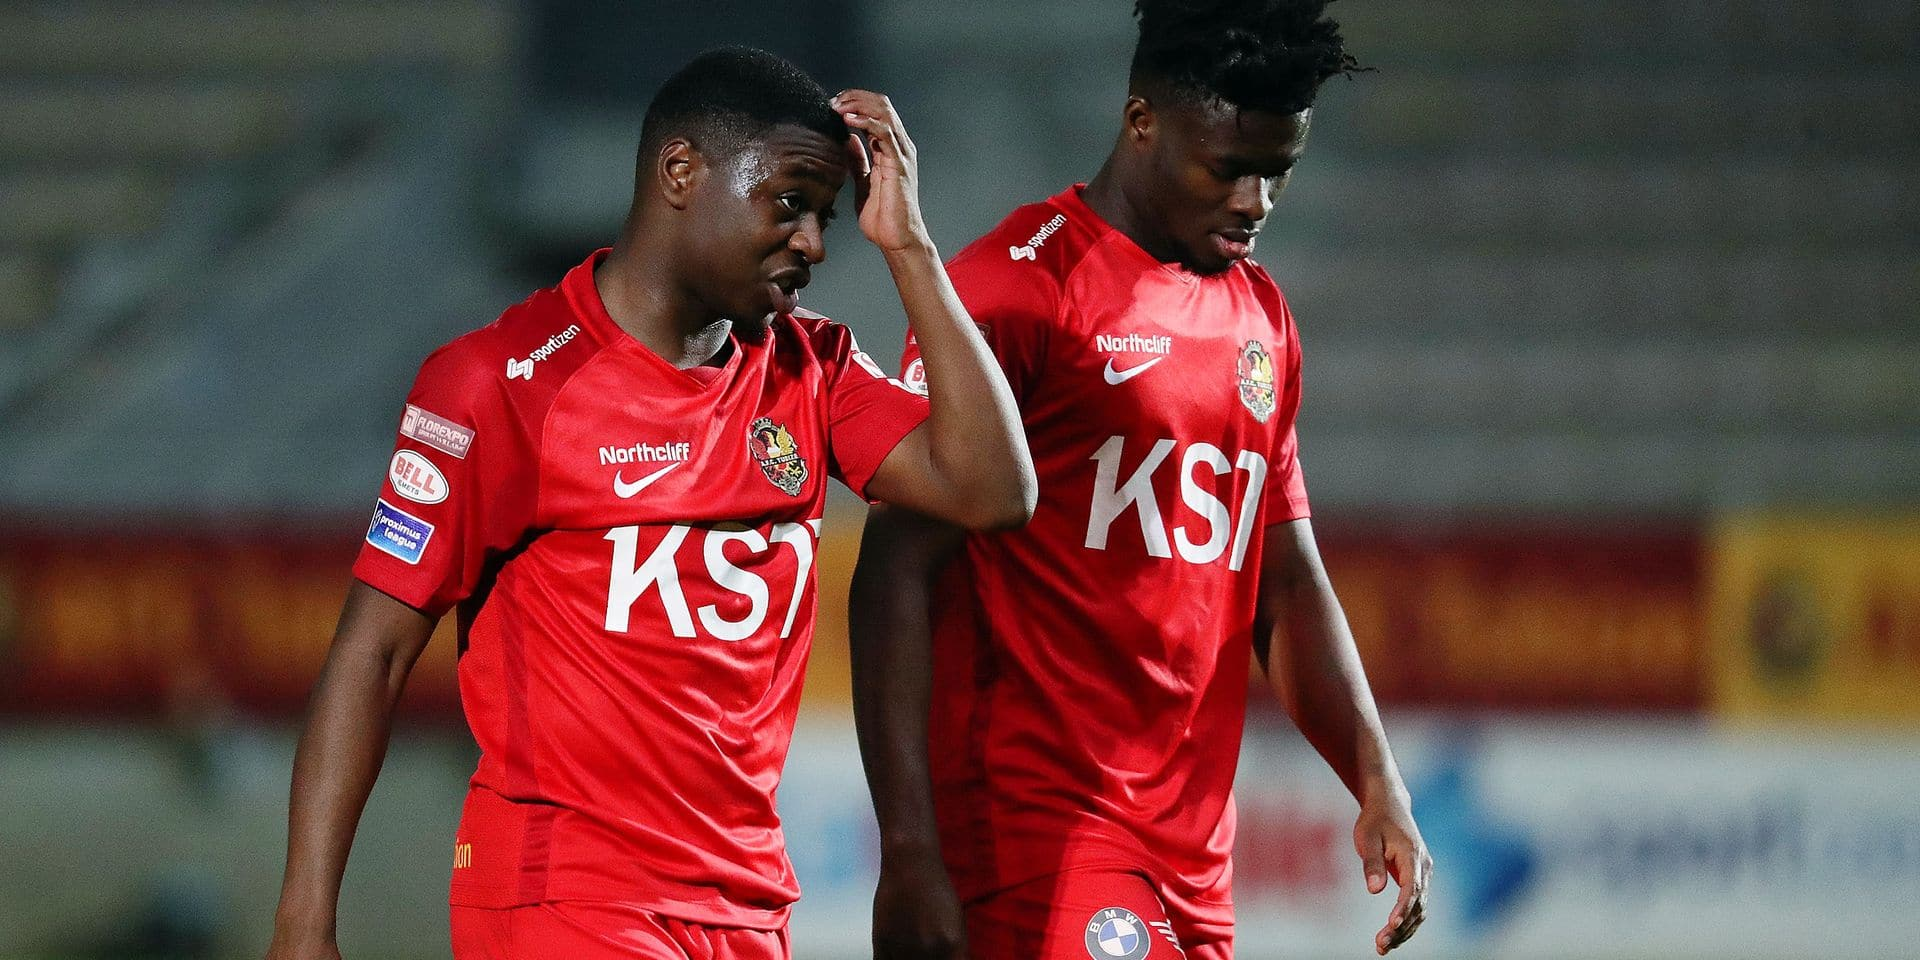 Tubize's Aaron Nemane look dejected after a soccer game between AFC Tubize and OH Leuven, Friday 19 April 2019 in Tubize, on day 5 (out of 6) of the Play-off 3 of the 'Jupiler Pro League' Belgian soccer championship. BELGA PHOTO VIRGINIE LEFOUR